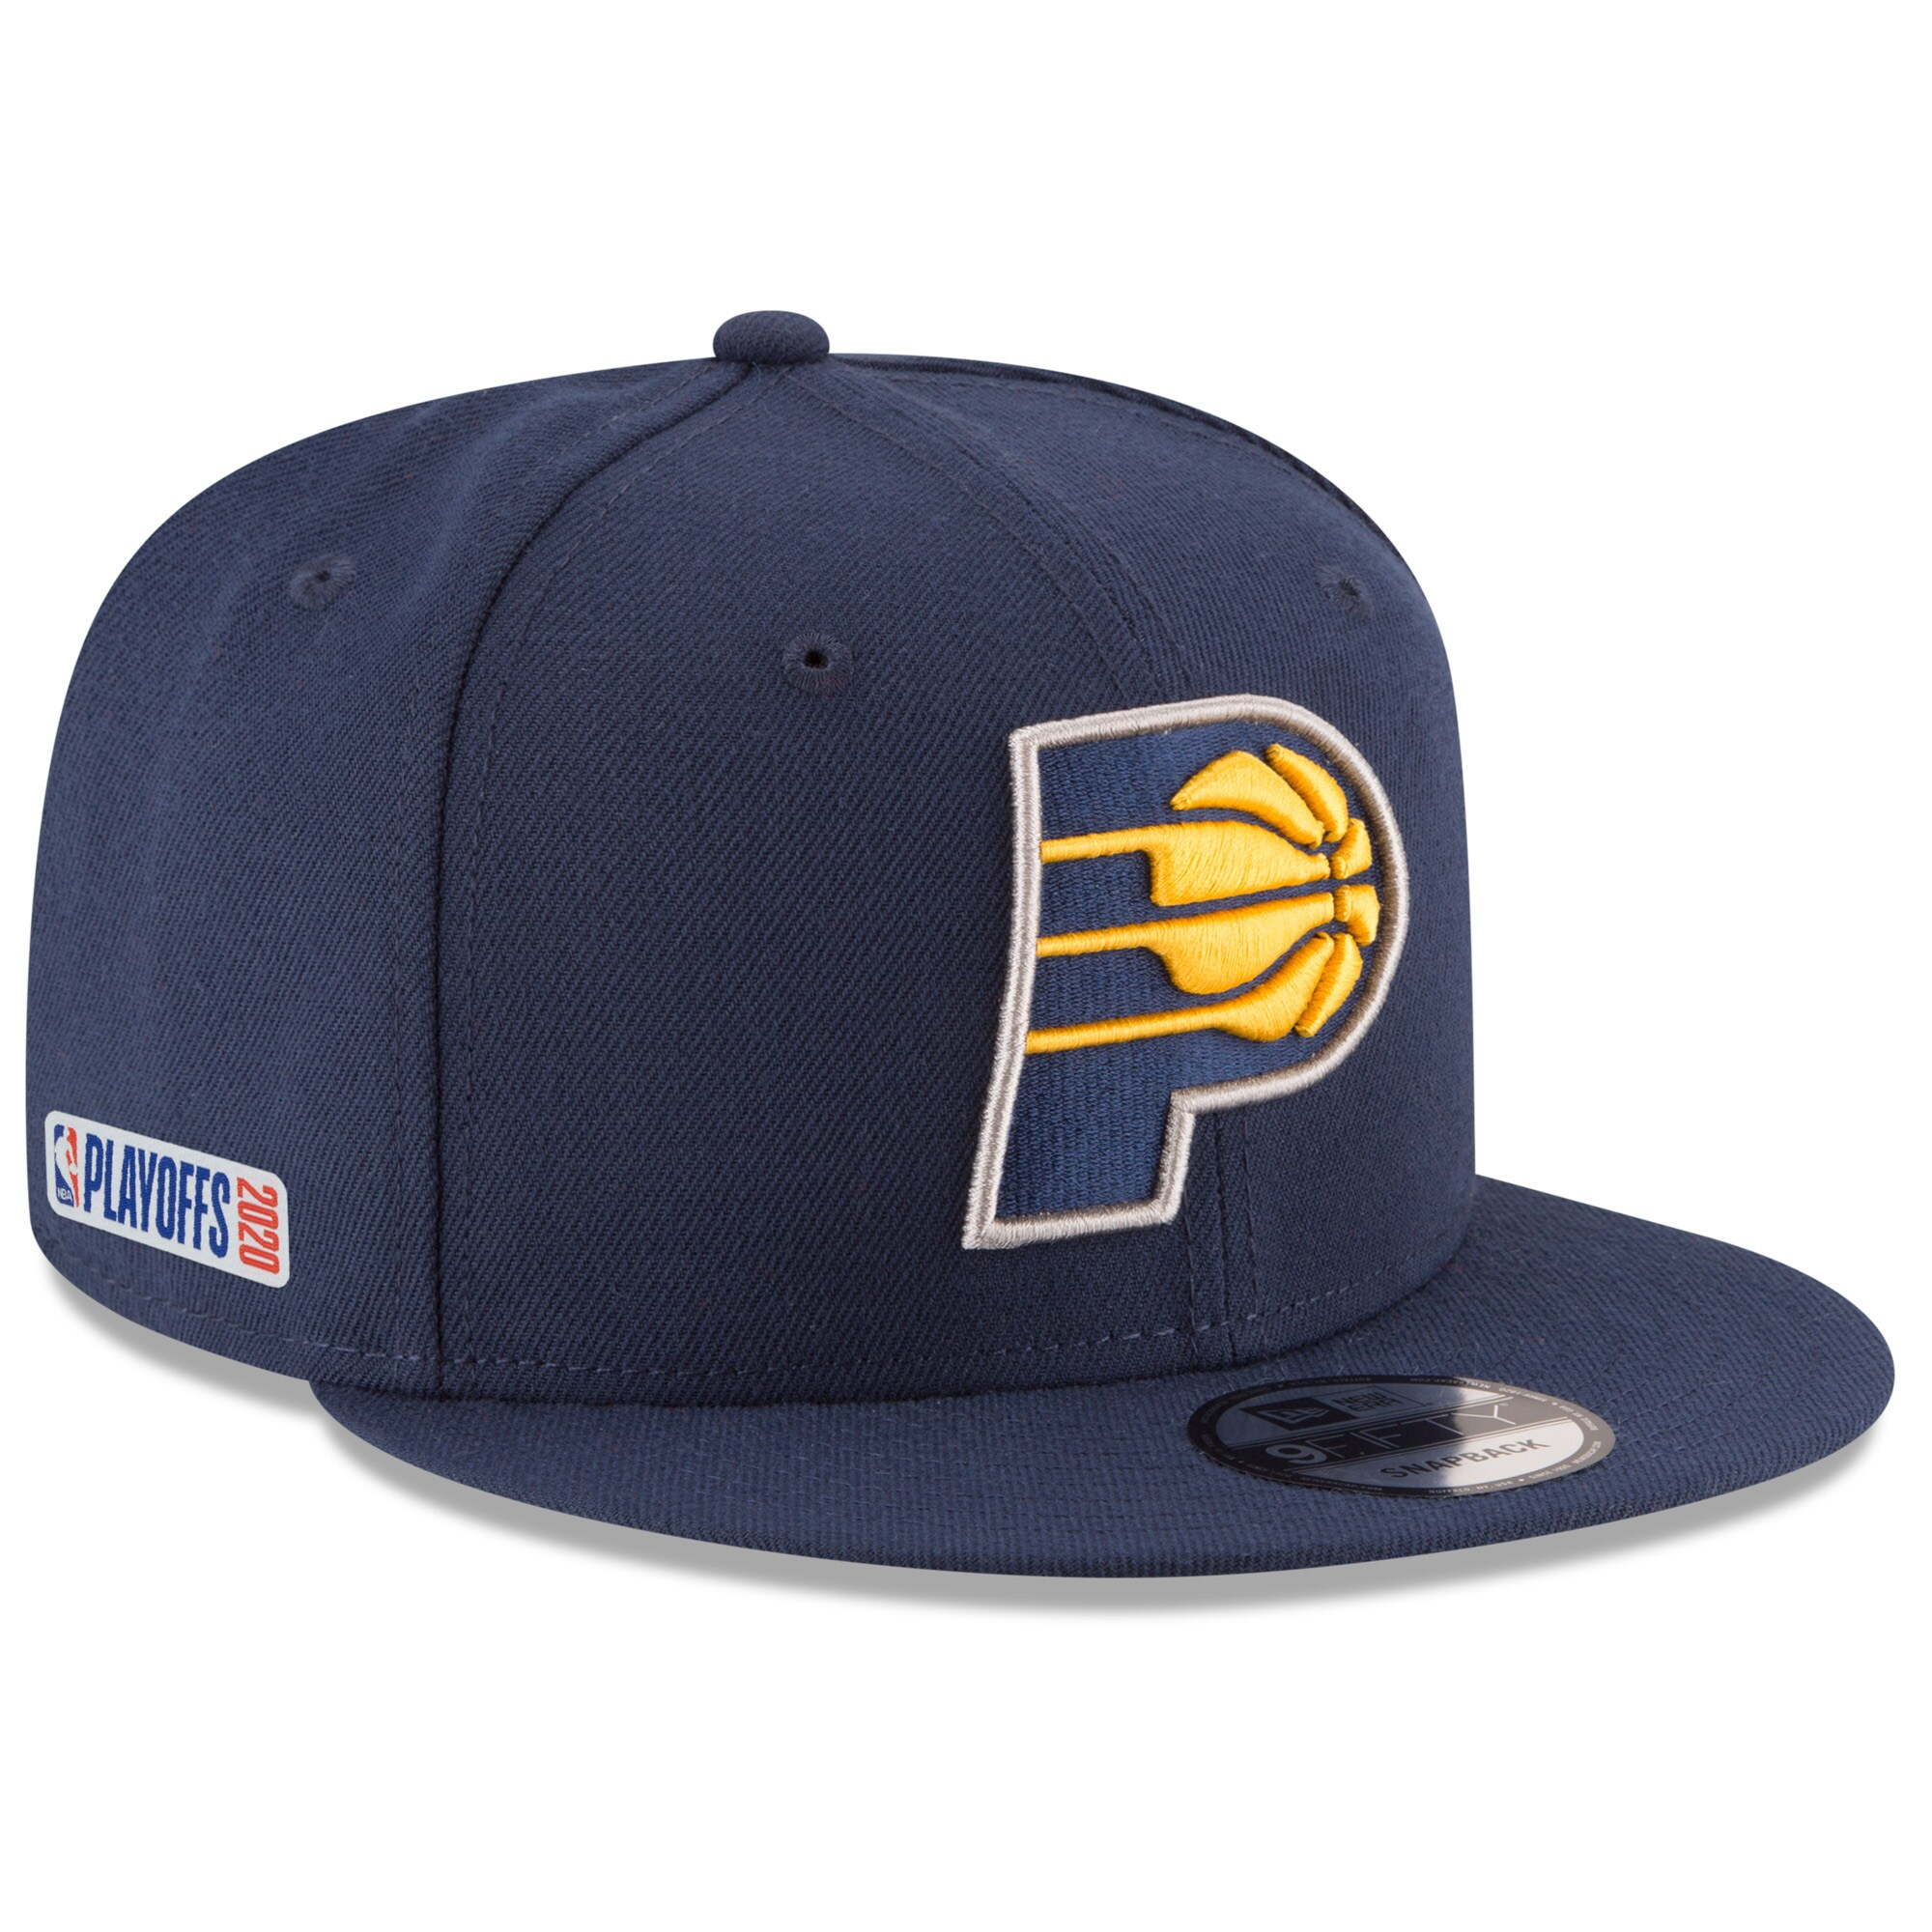 Indiana Pacers New Era 2020 NBA Playoffs Bound 9FIFTY Snapback Adjustable Hat - Navy